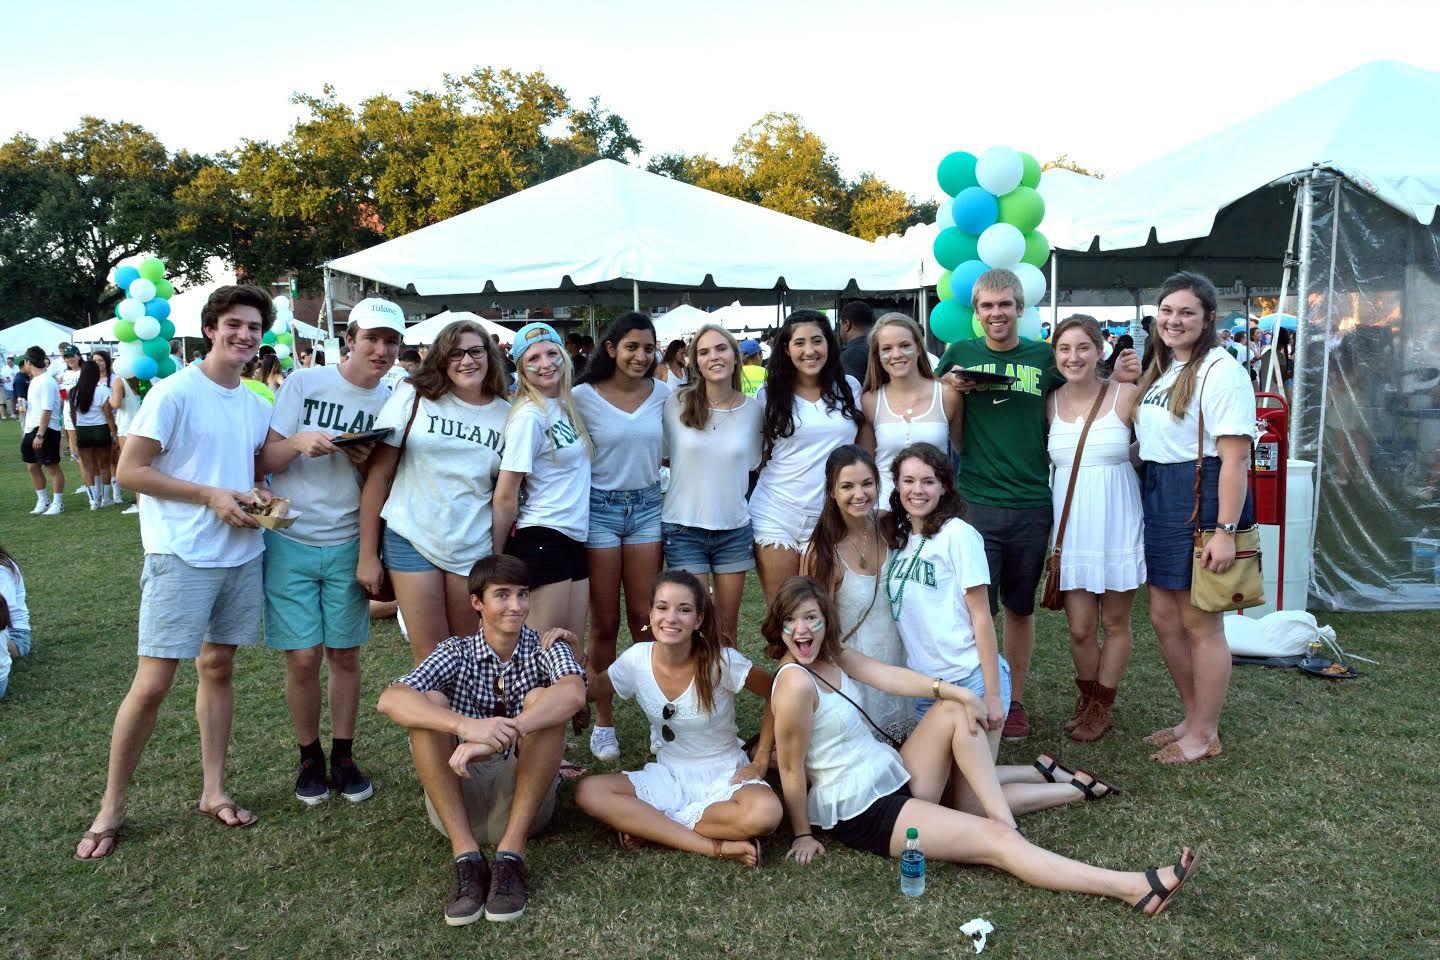 A group of tailgating Tulane students rock their